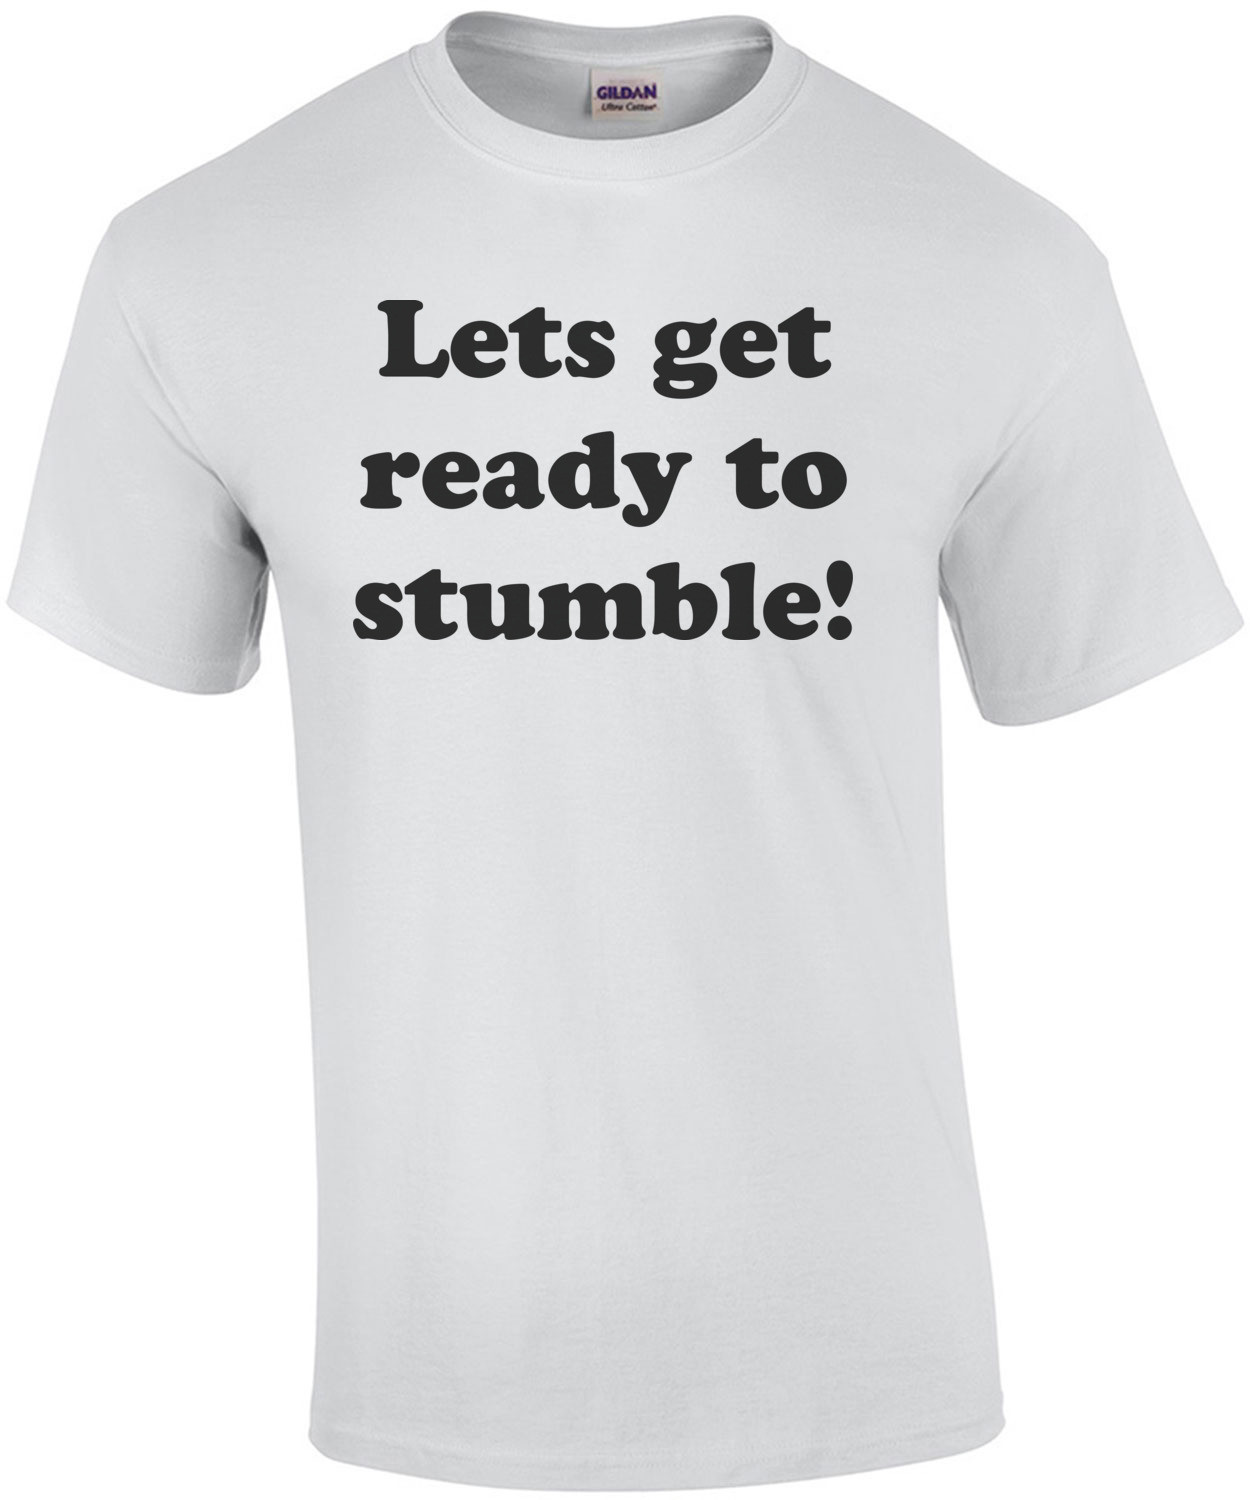 Lets get ready to stumble! Happy Birthday T-Shirt Shirt